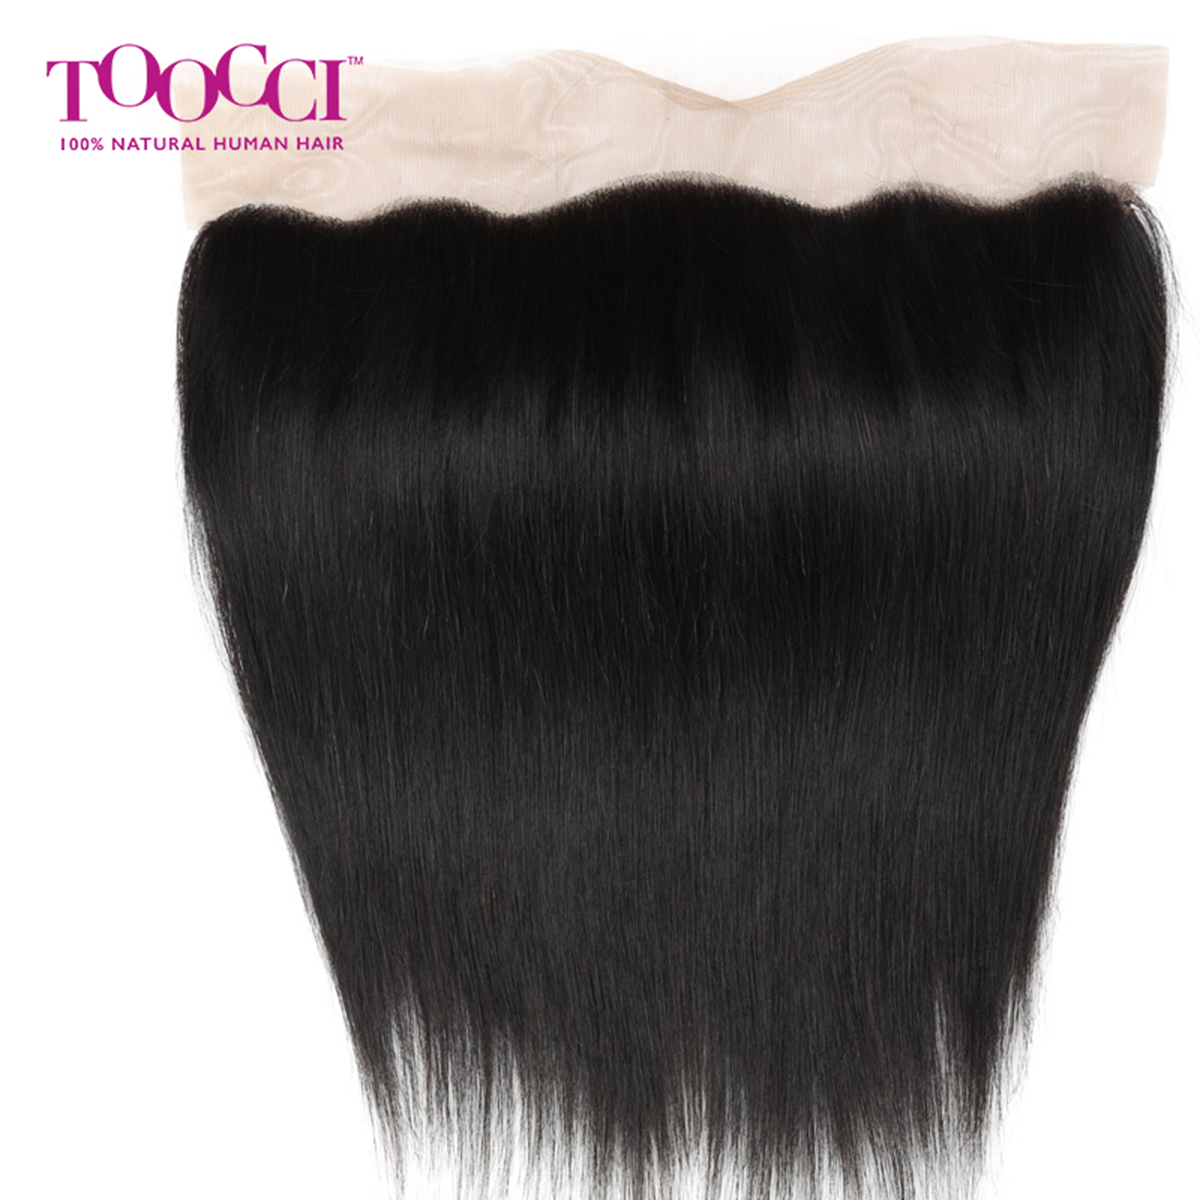 8A-Brazilian-Virgin-Straight-100-Human-Hair-1-3-Bundles-with-Lace-Closure-US thumbnail 23